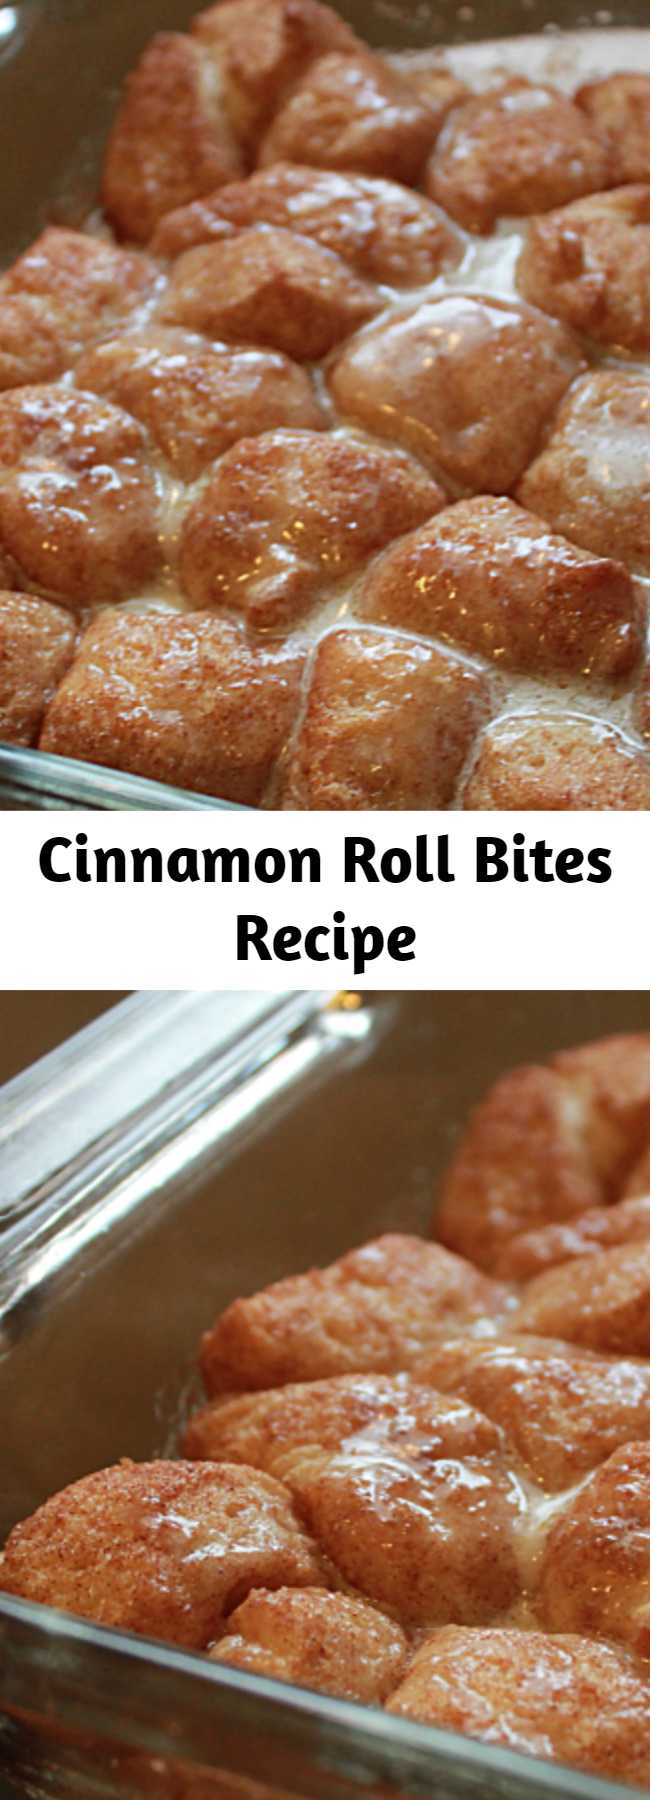 Cinnamon Roll Bites Recipe - Ooey, gooey Cinnamon Roll Bites give you all the great taste of a cinnamon roll without all the work! They take no time at all to make and will vanish quicker than a blink of an eye.